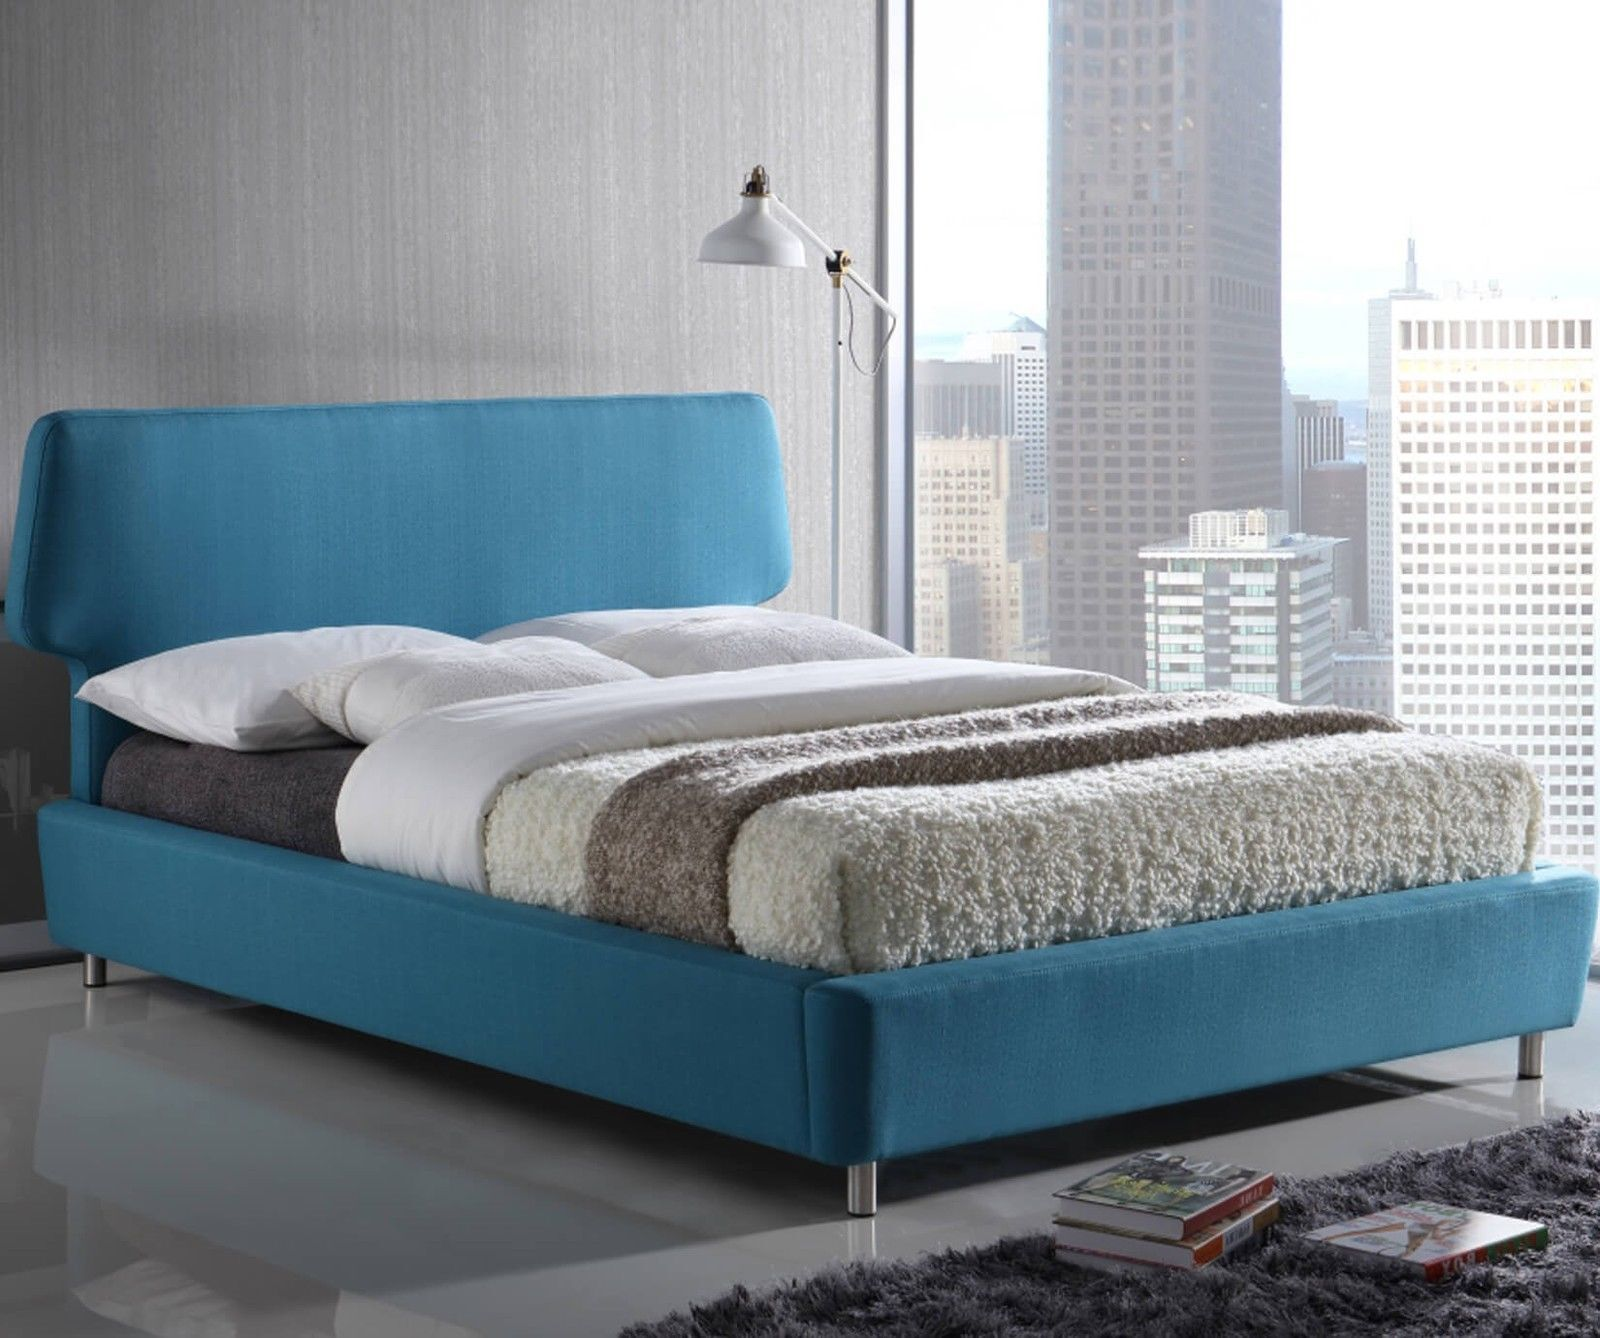 Sienna Blue Fabric Bed Frame Modern Style Curved Headboard Double King Size Ebay